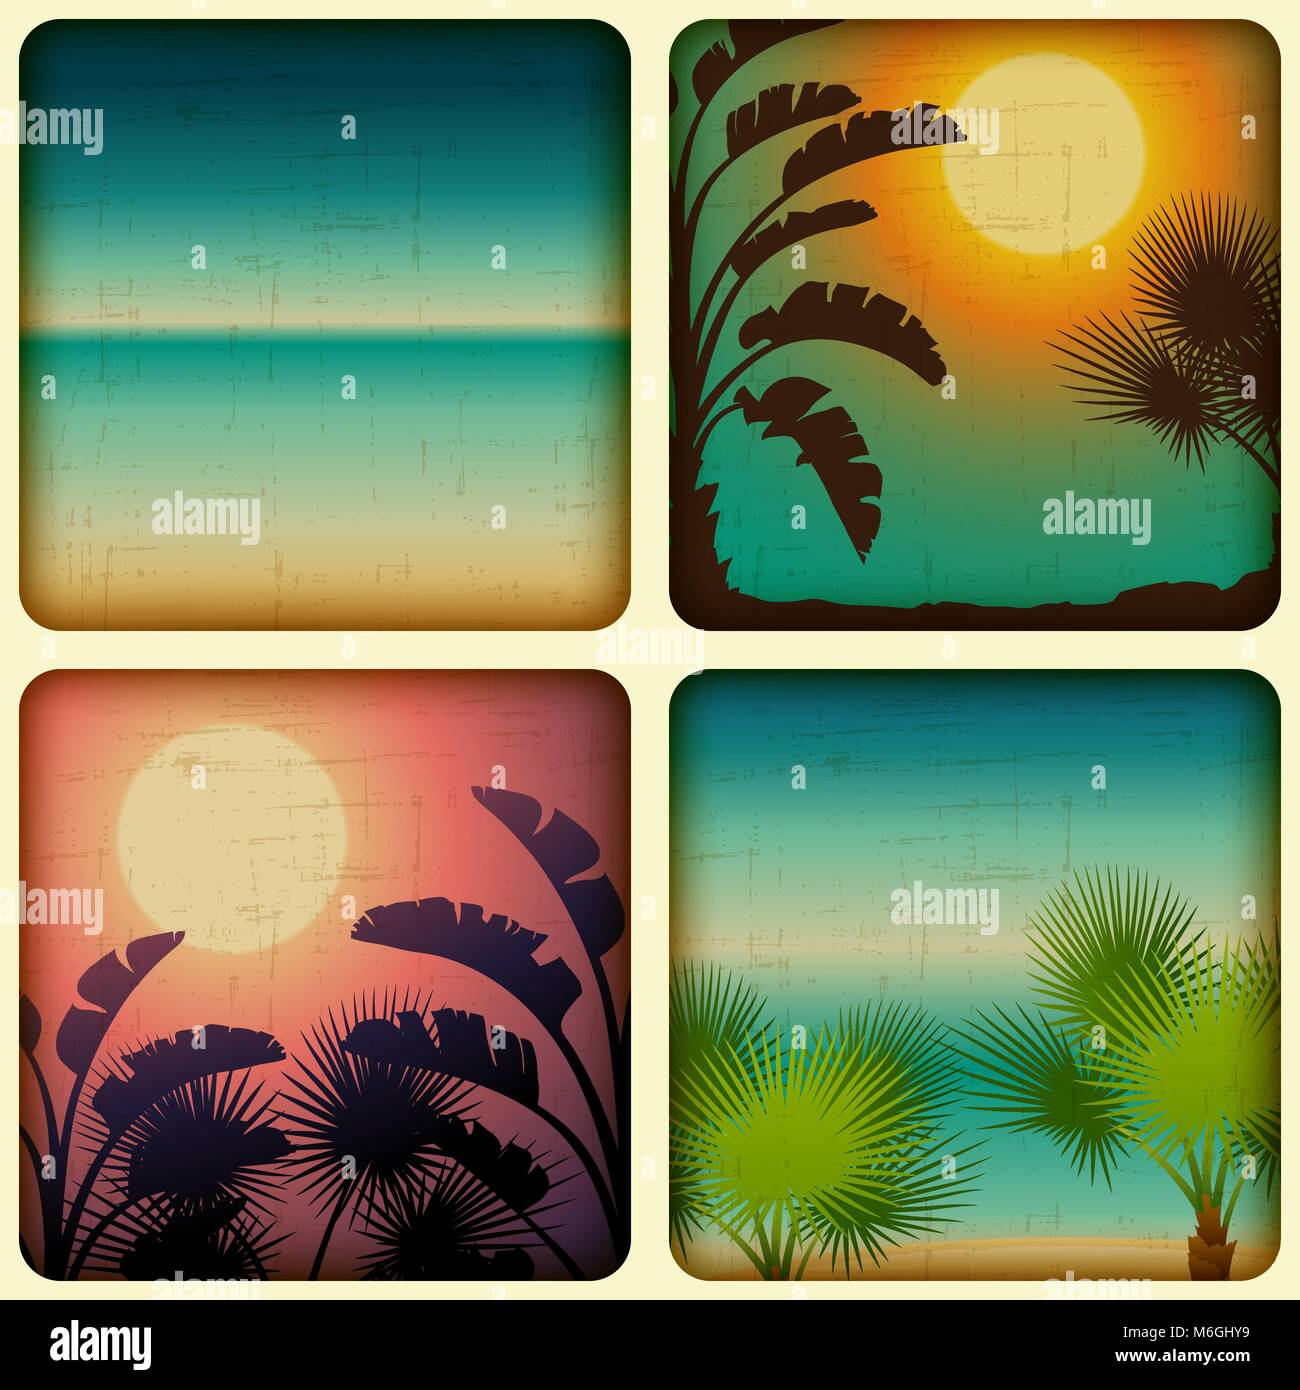 Retro tropical cards with seaside and palm trees - Stock Vector